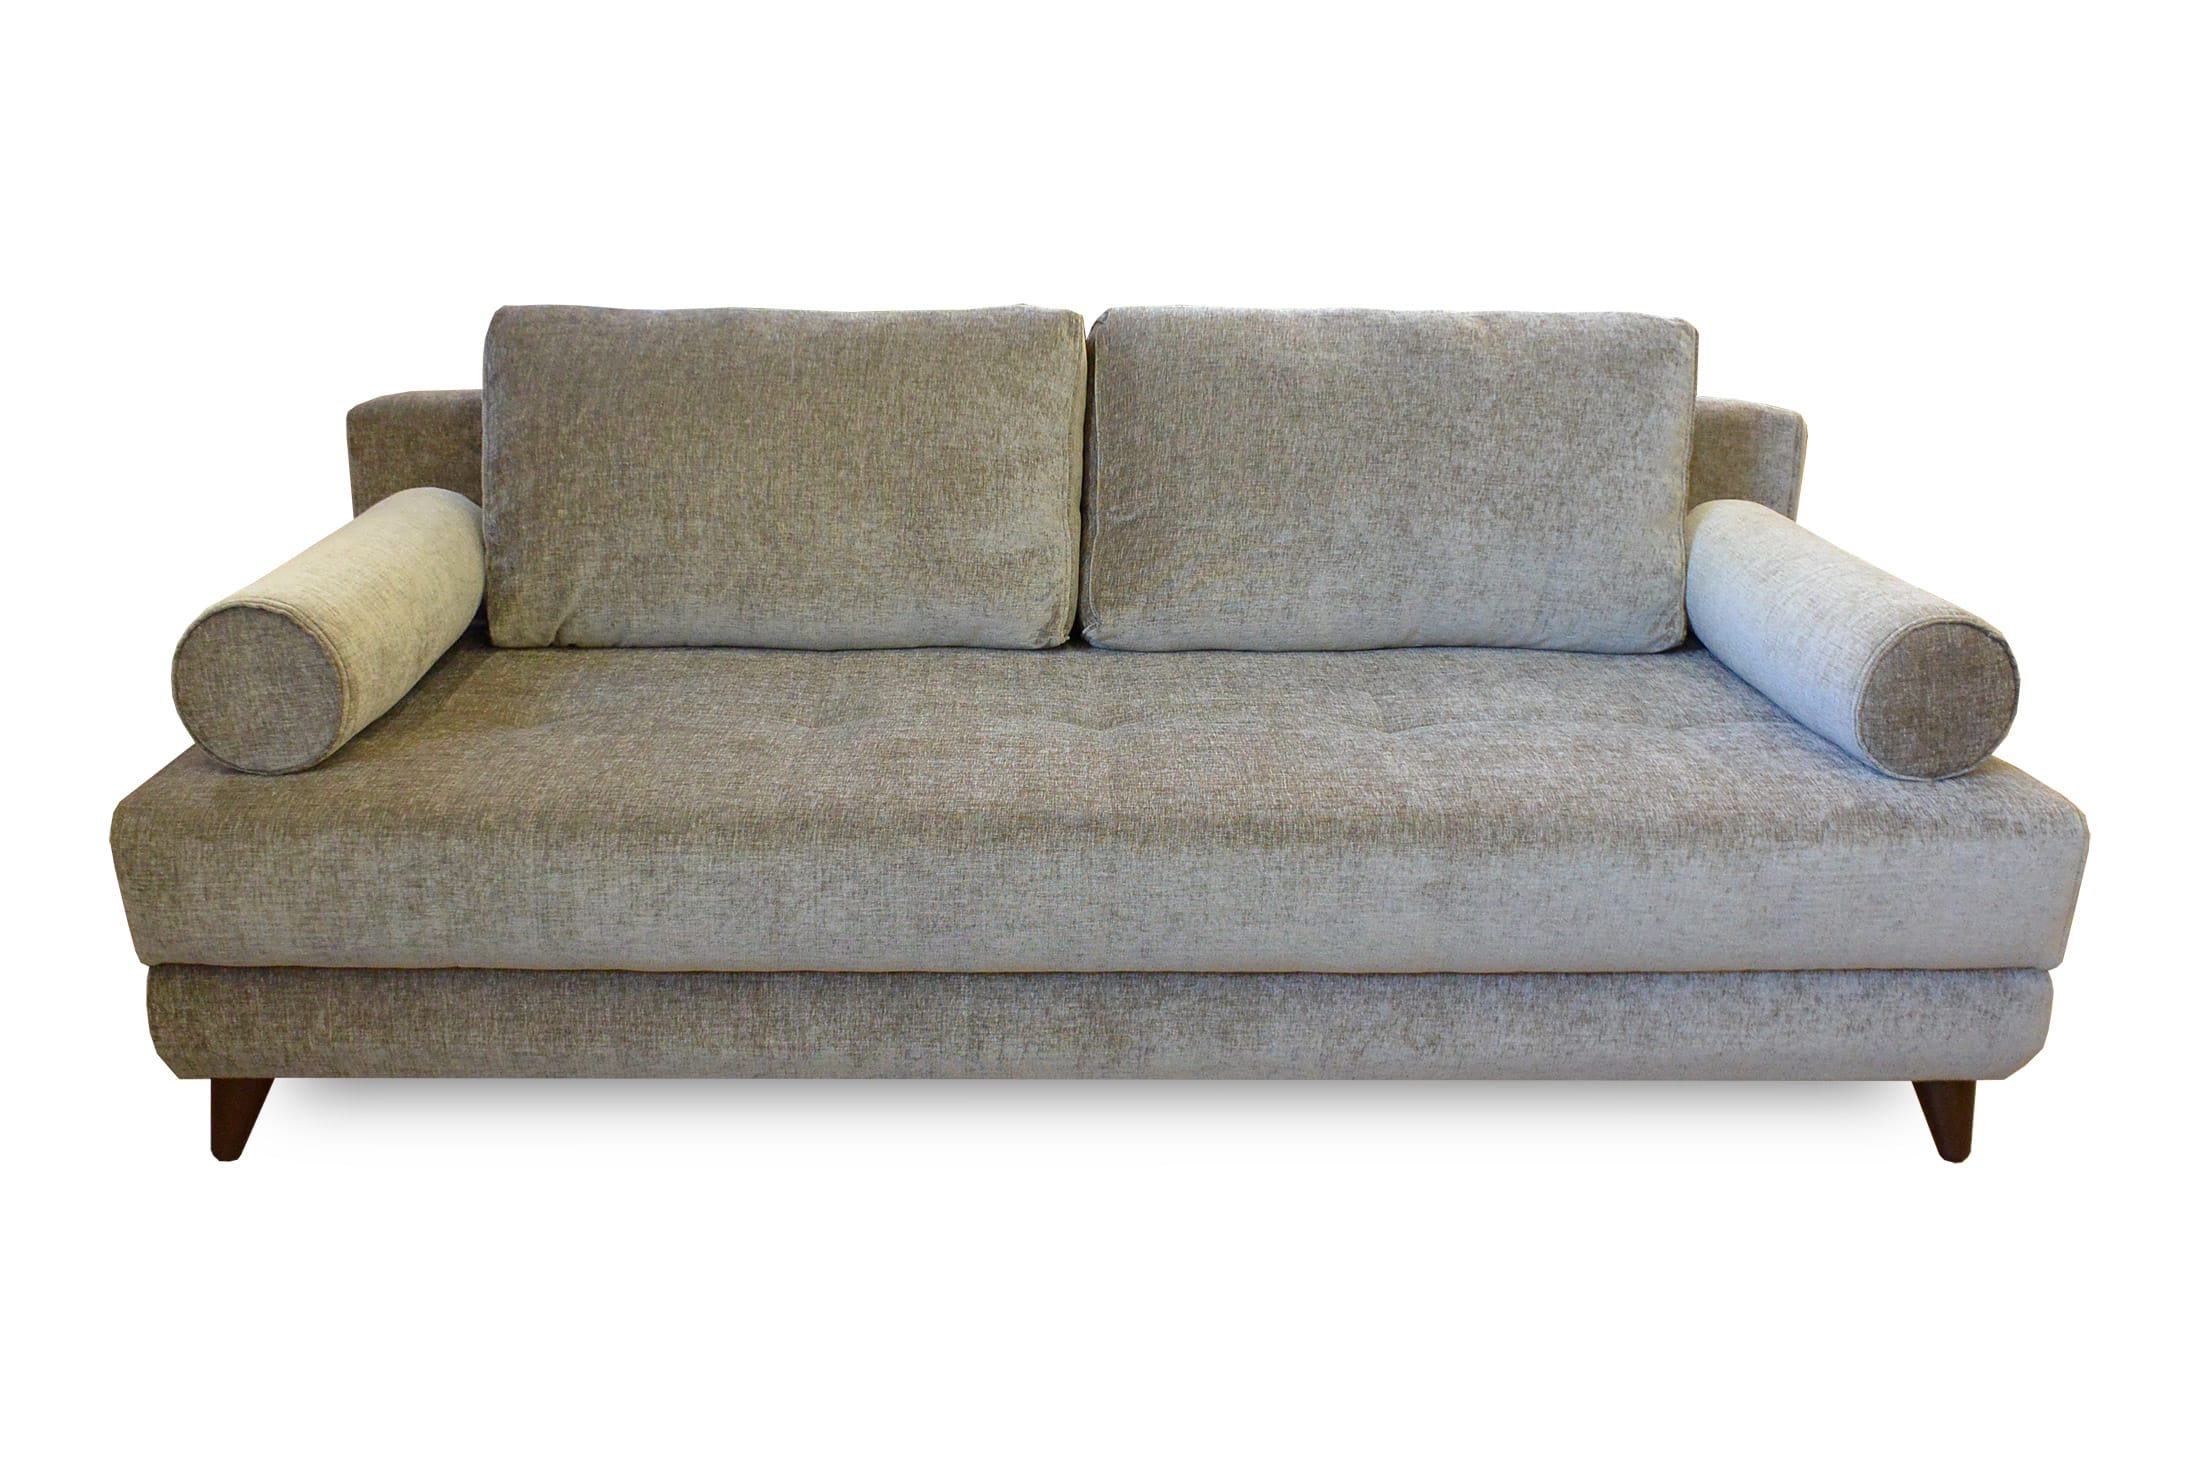 Futon Factory Paris Stella Jennefer Light Brown Convertible Sofa Bed Queen Sleeper By Istikbal Furniture